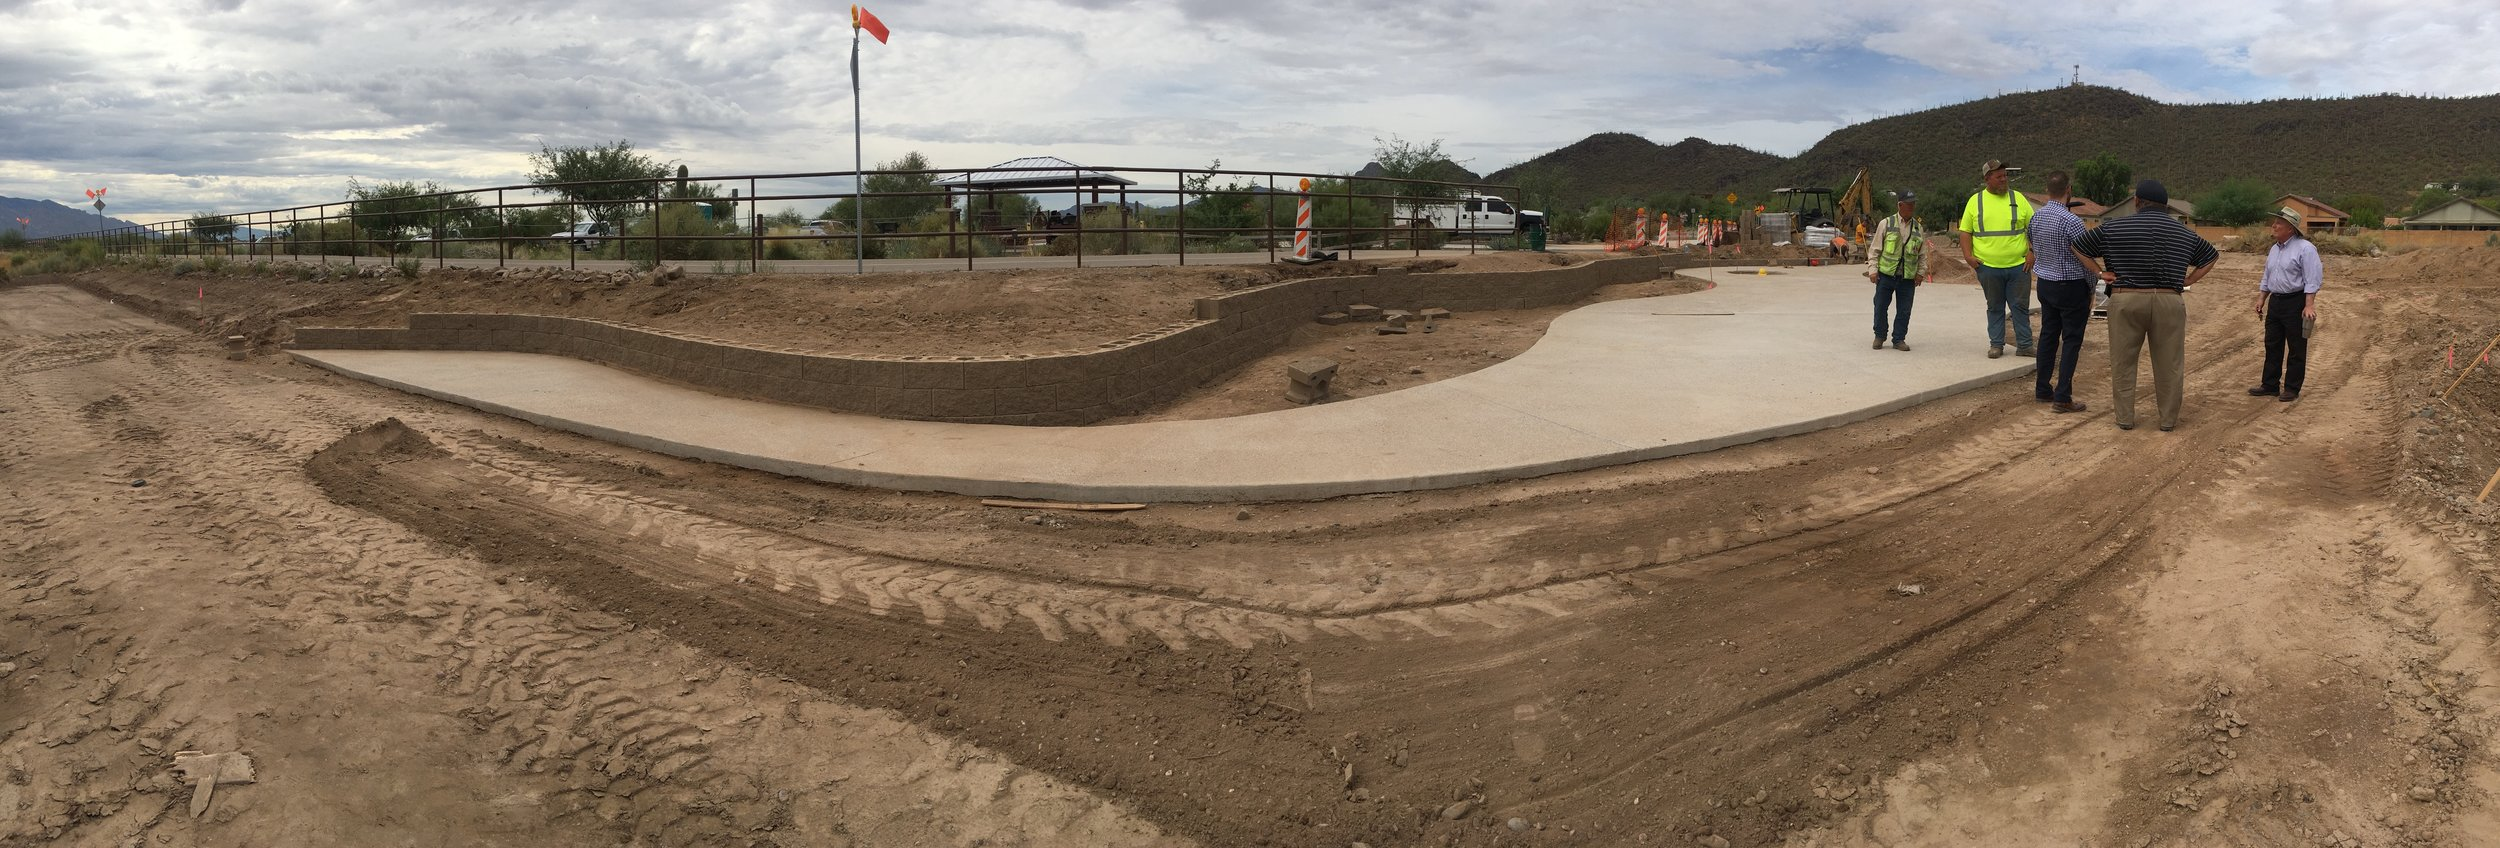 Construction site at El Rio Preserve. Pictured is the pedestrian plaza which will eventually include seating and interpretive signage.